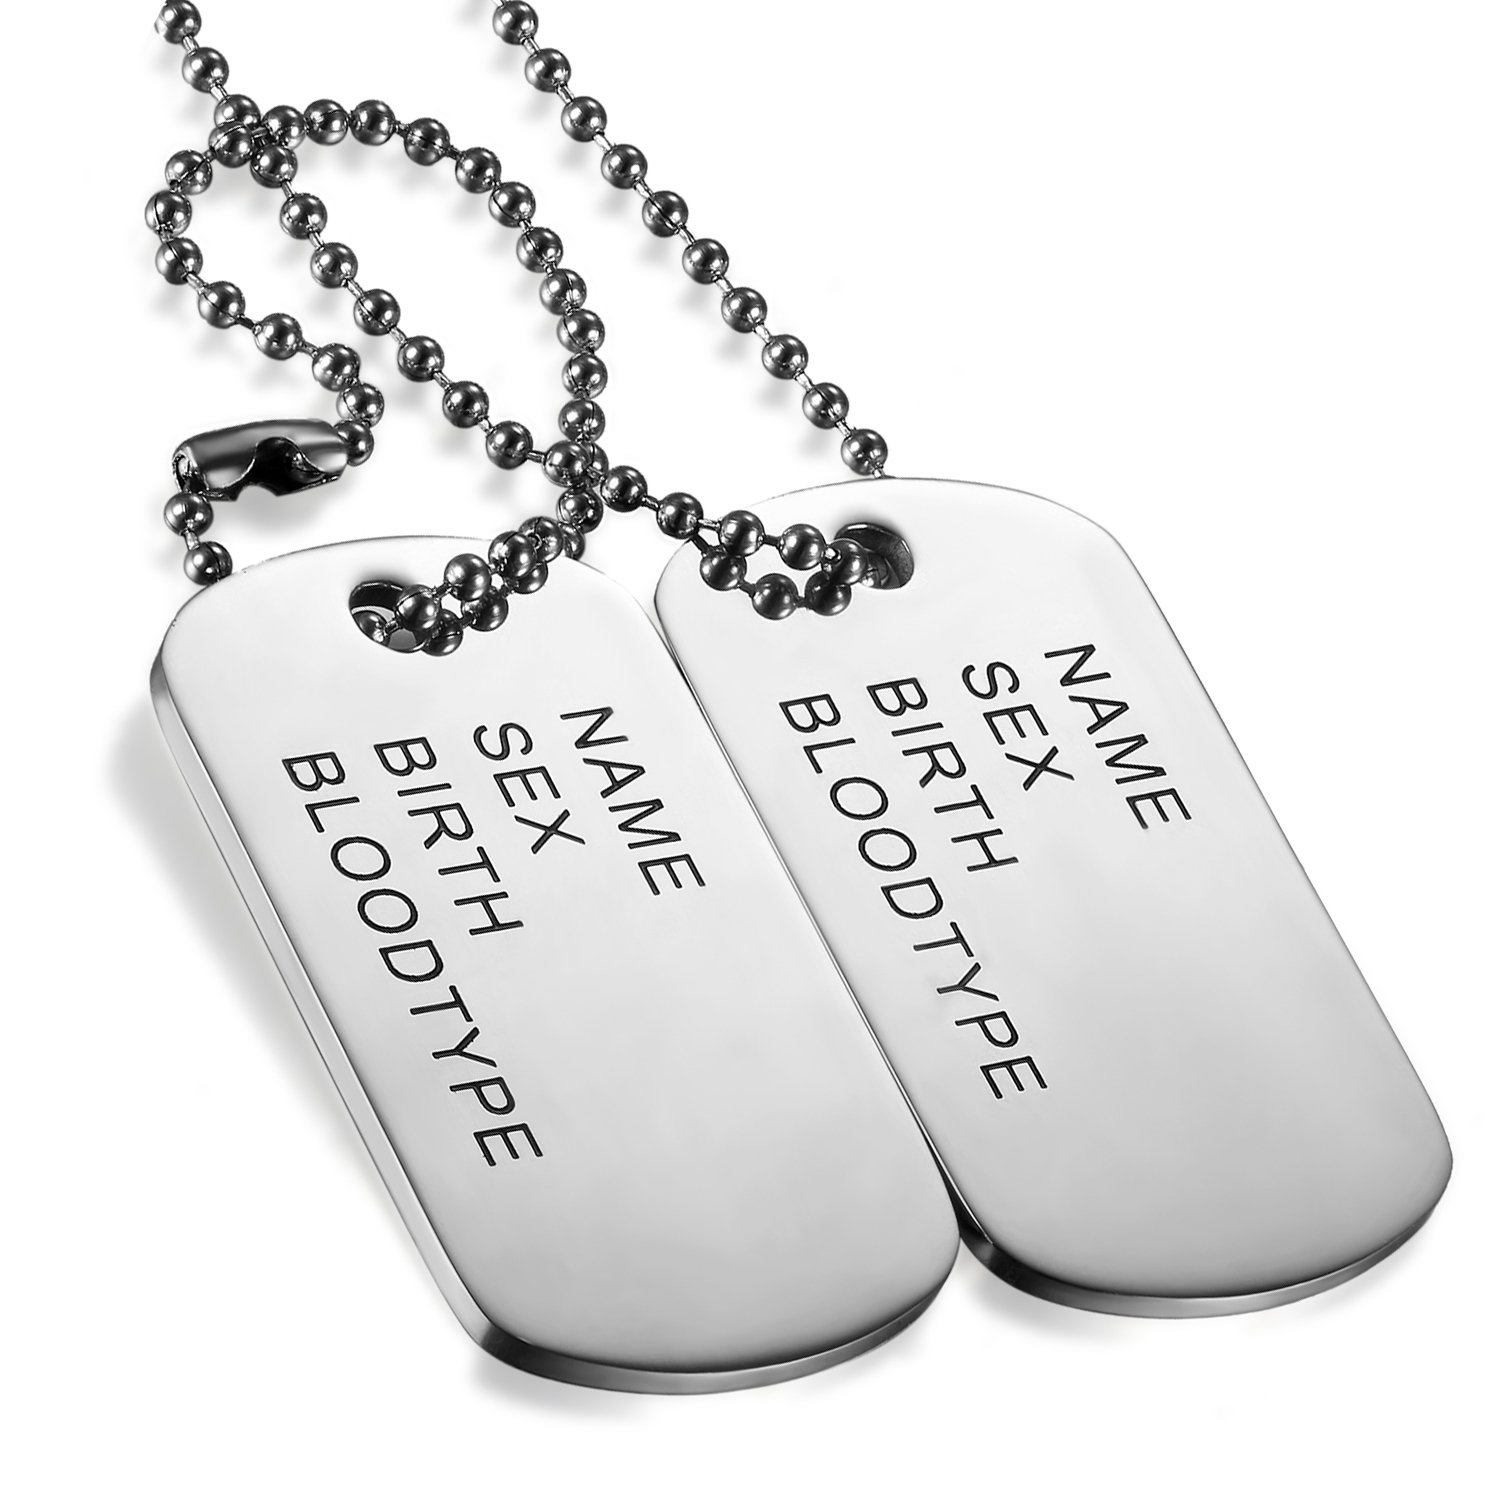 Flongo Men's Vintage 2PCS Stainless Steel Name Tag Army Dog Tag Pendant Necklace, 28 inch Chain F045023